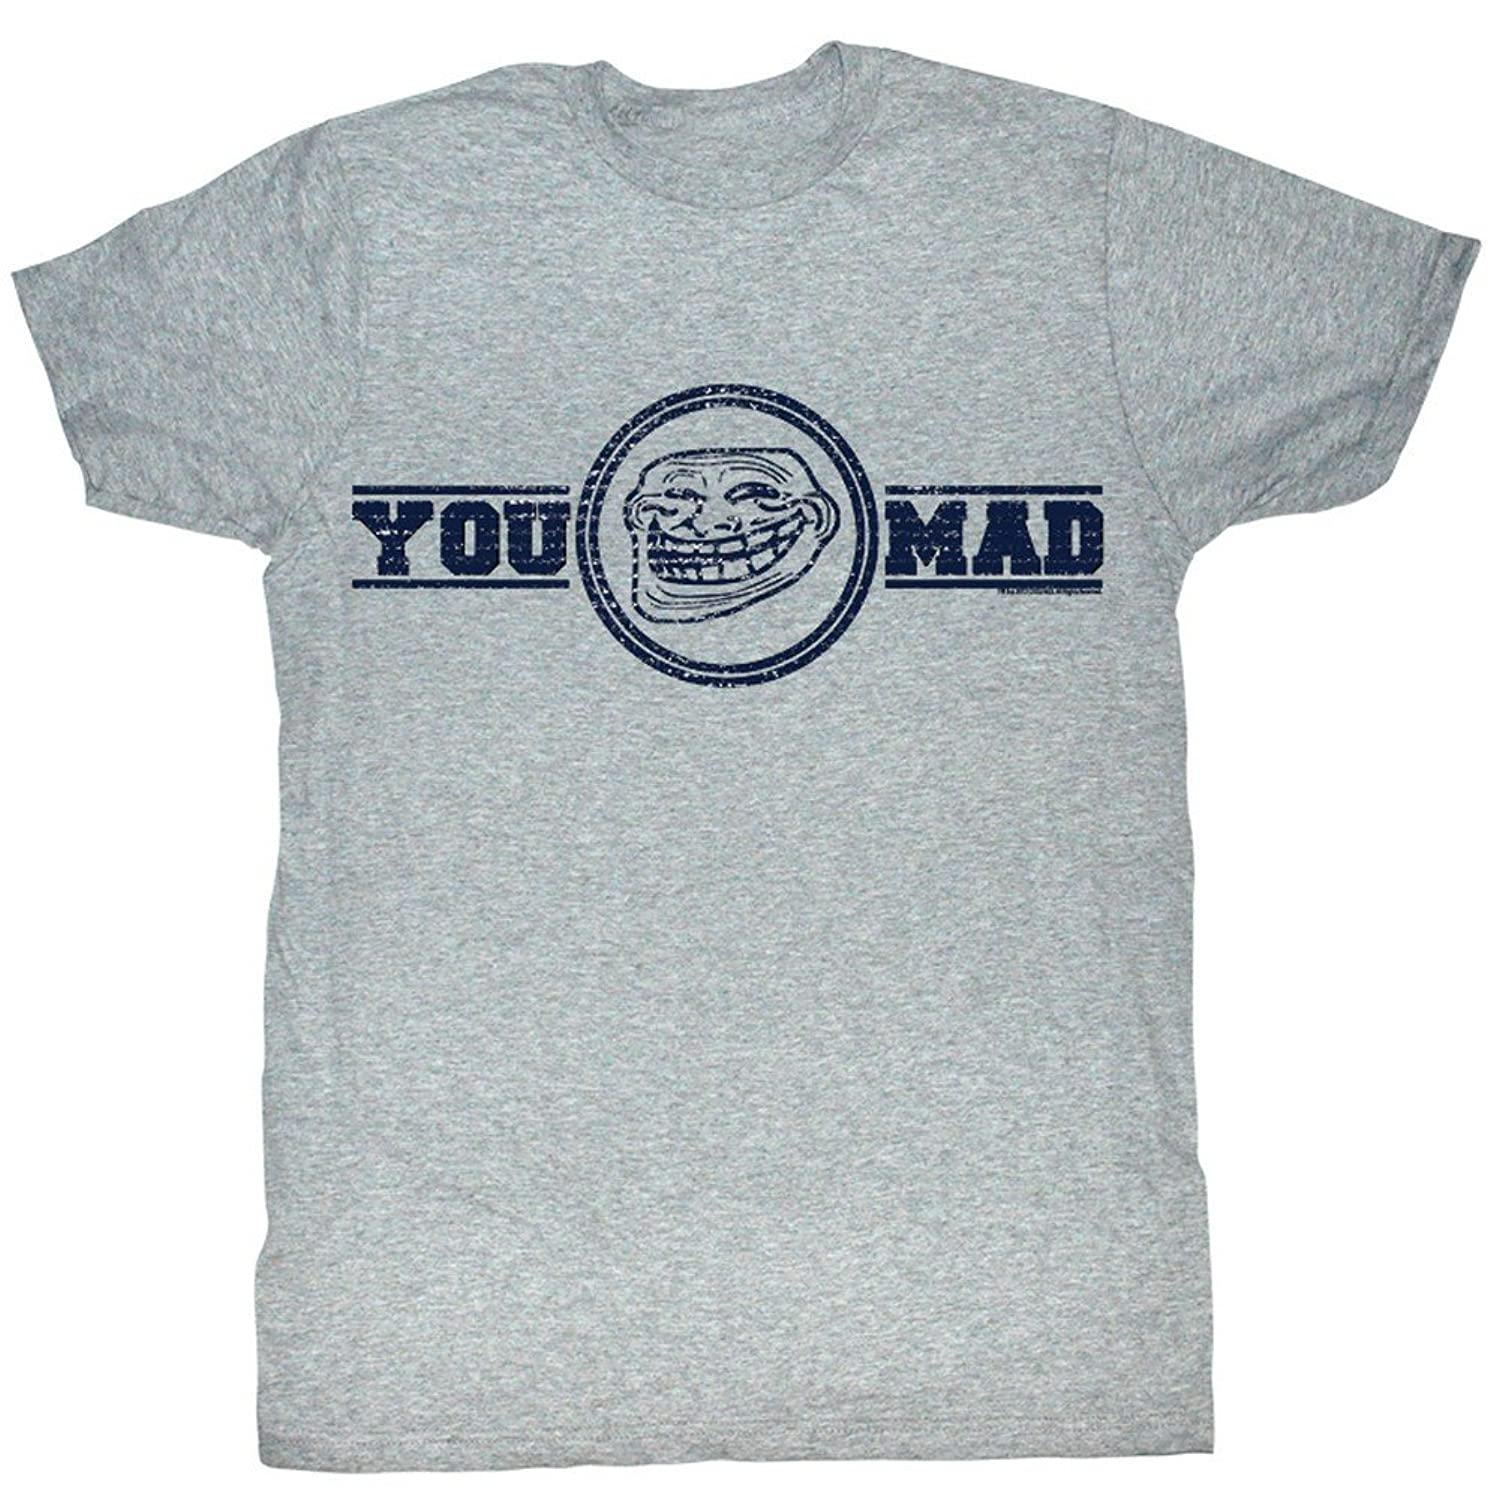 U Mad? You Mad Bro? Meme GIF Trending You Mad Logo Adult T-Shirt